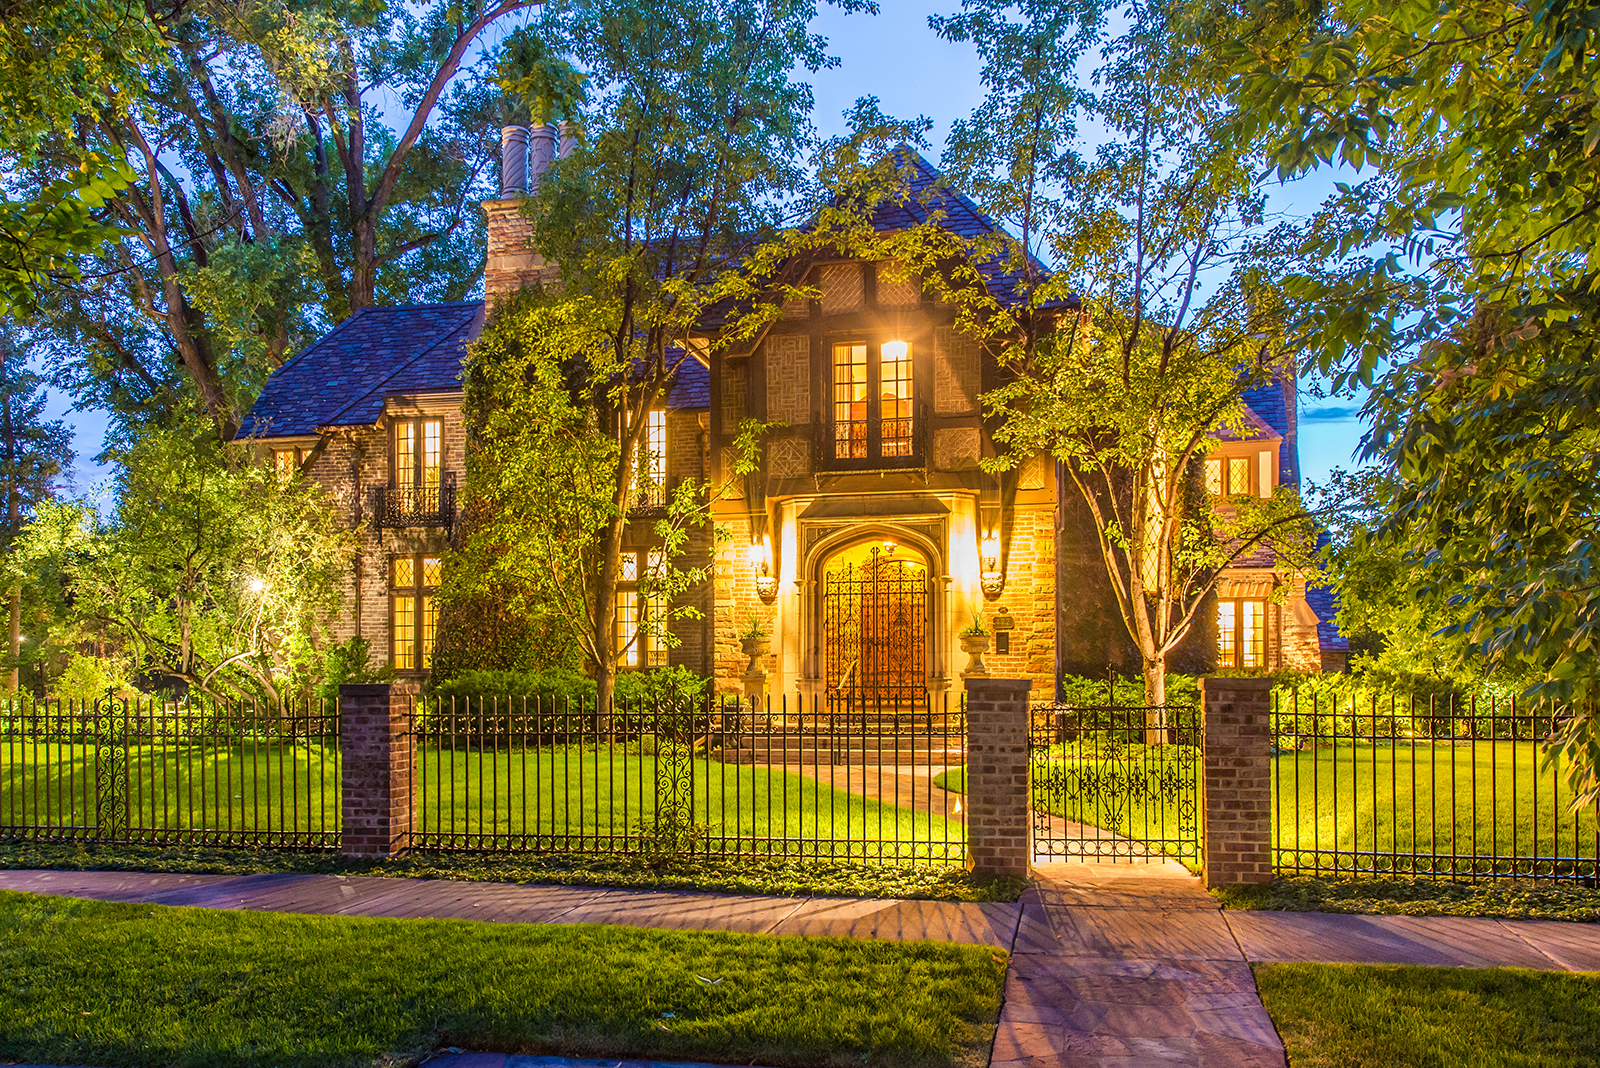 177 North Humboldt Street, Denver, CO. Listed by LIV Sotheby's International Realty for $5,875,000.